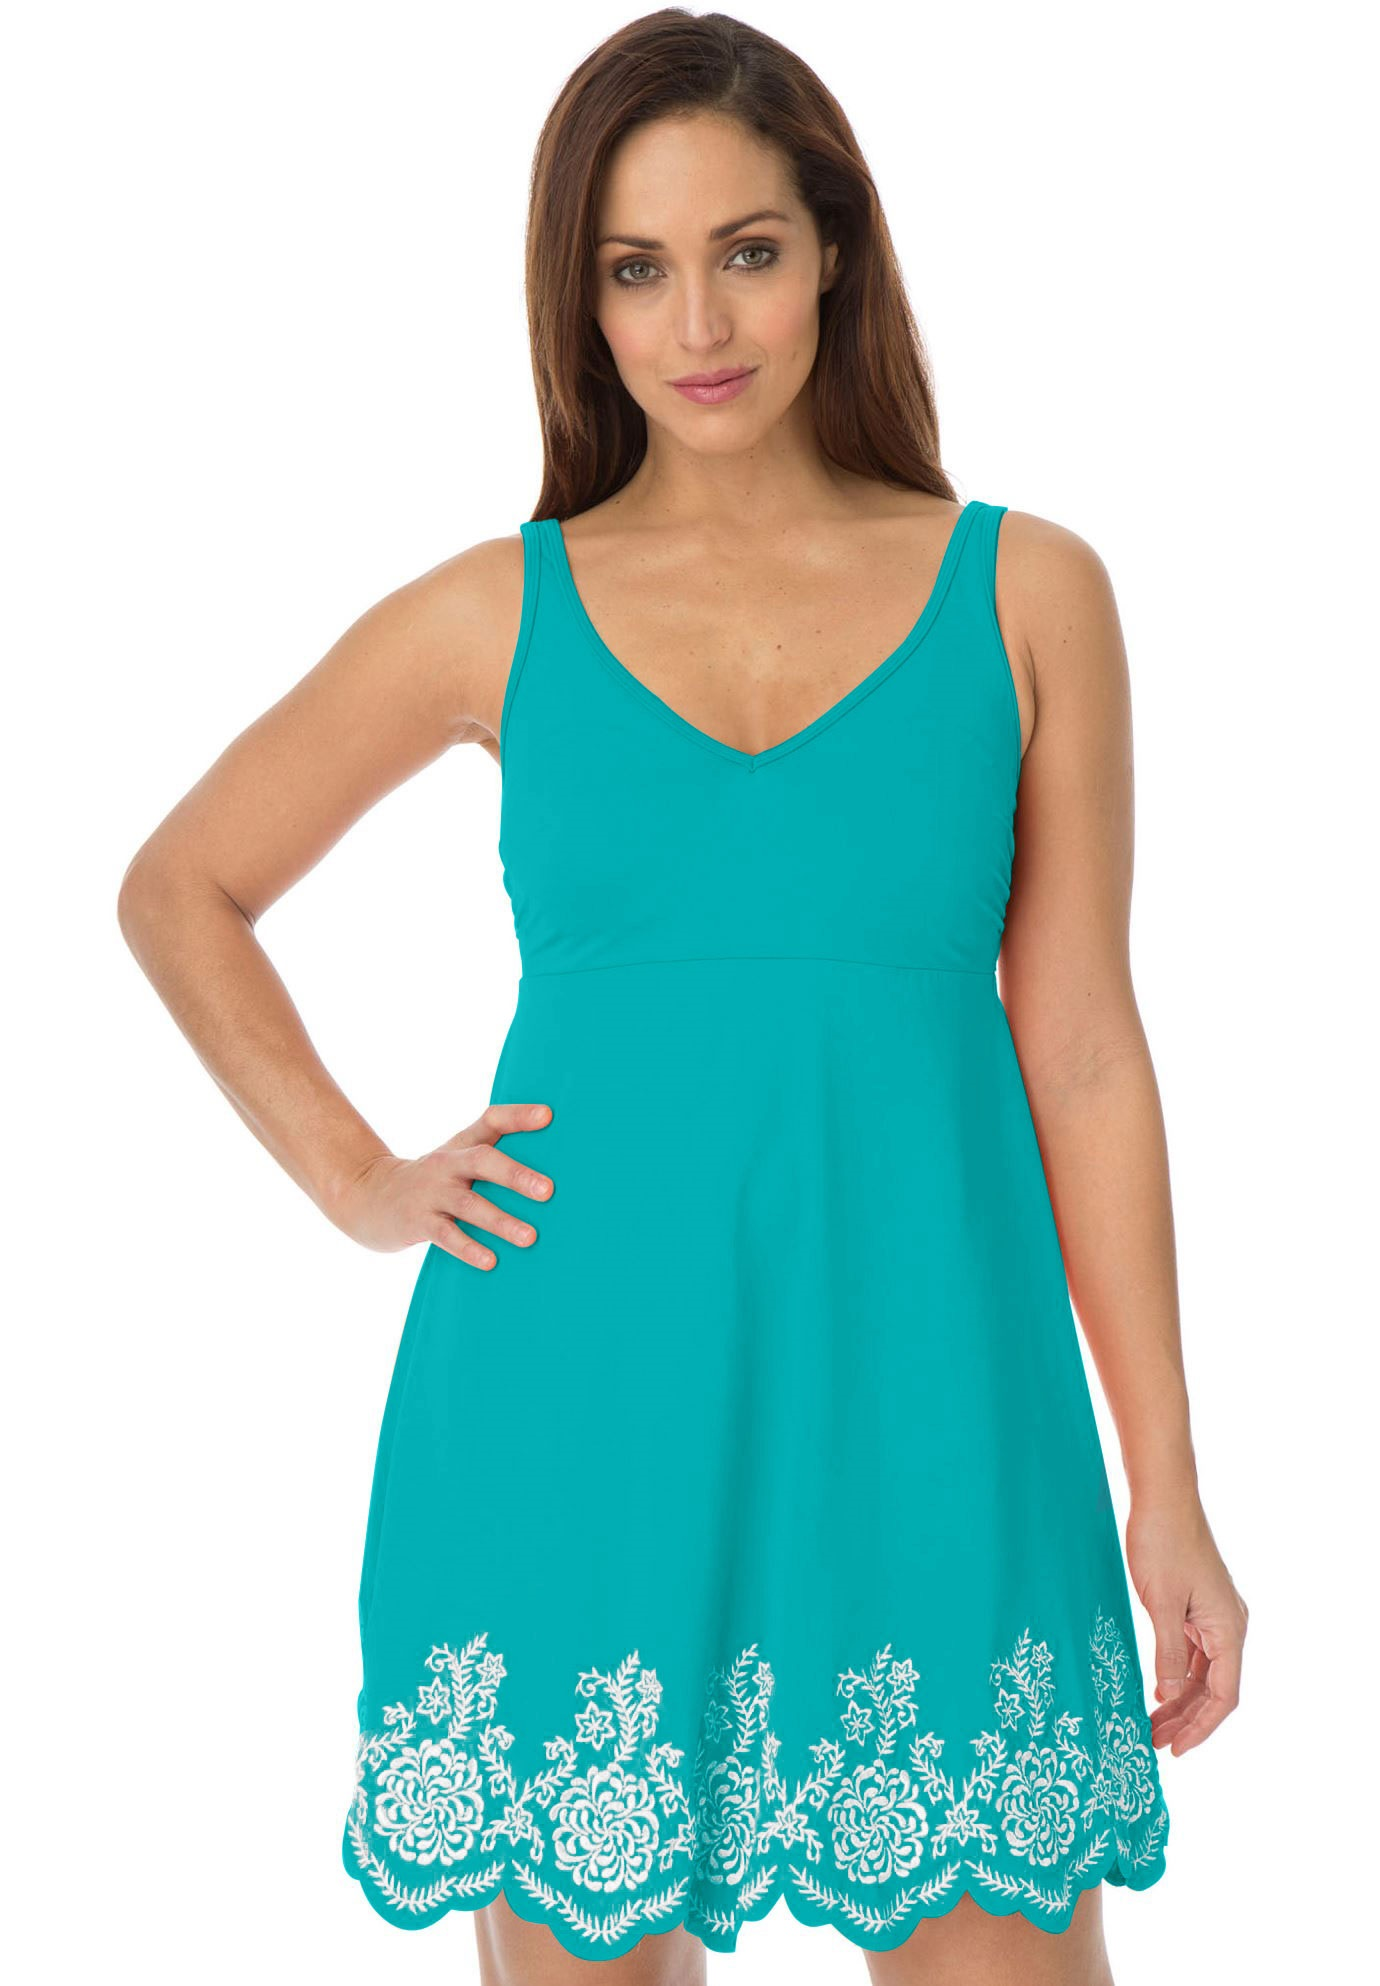 332105a020ee4 Empire Swim Dress - Women's Plus Size Clothing | Products | Swim ...